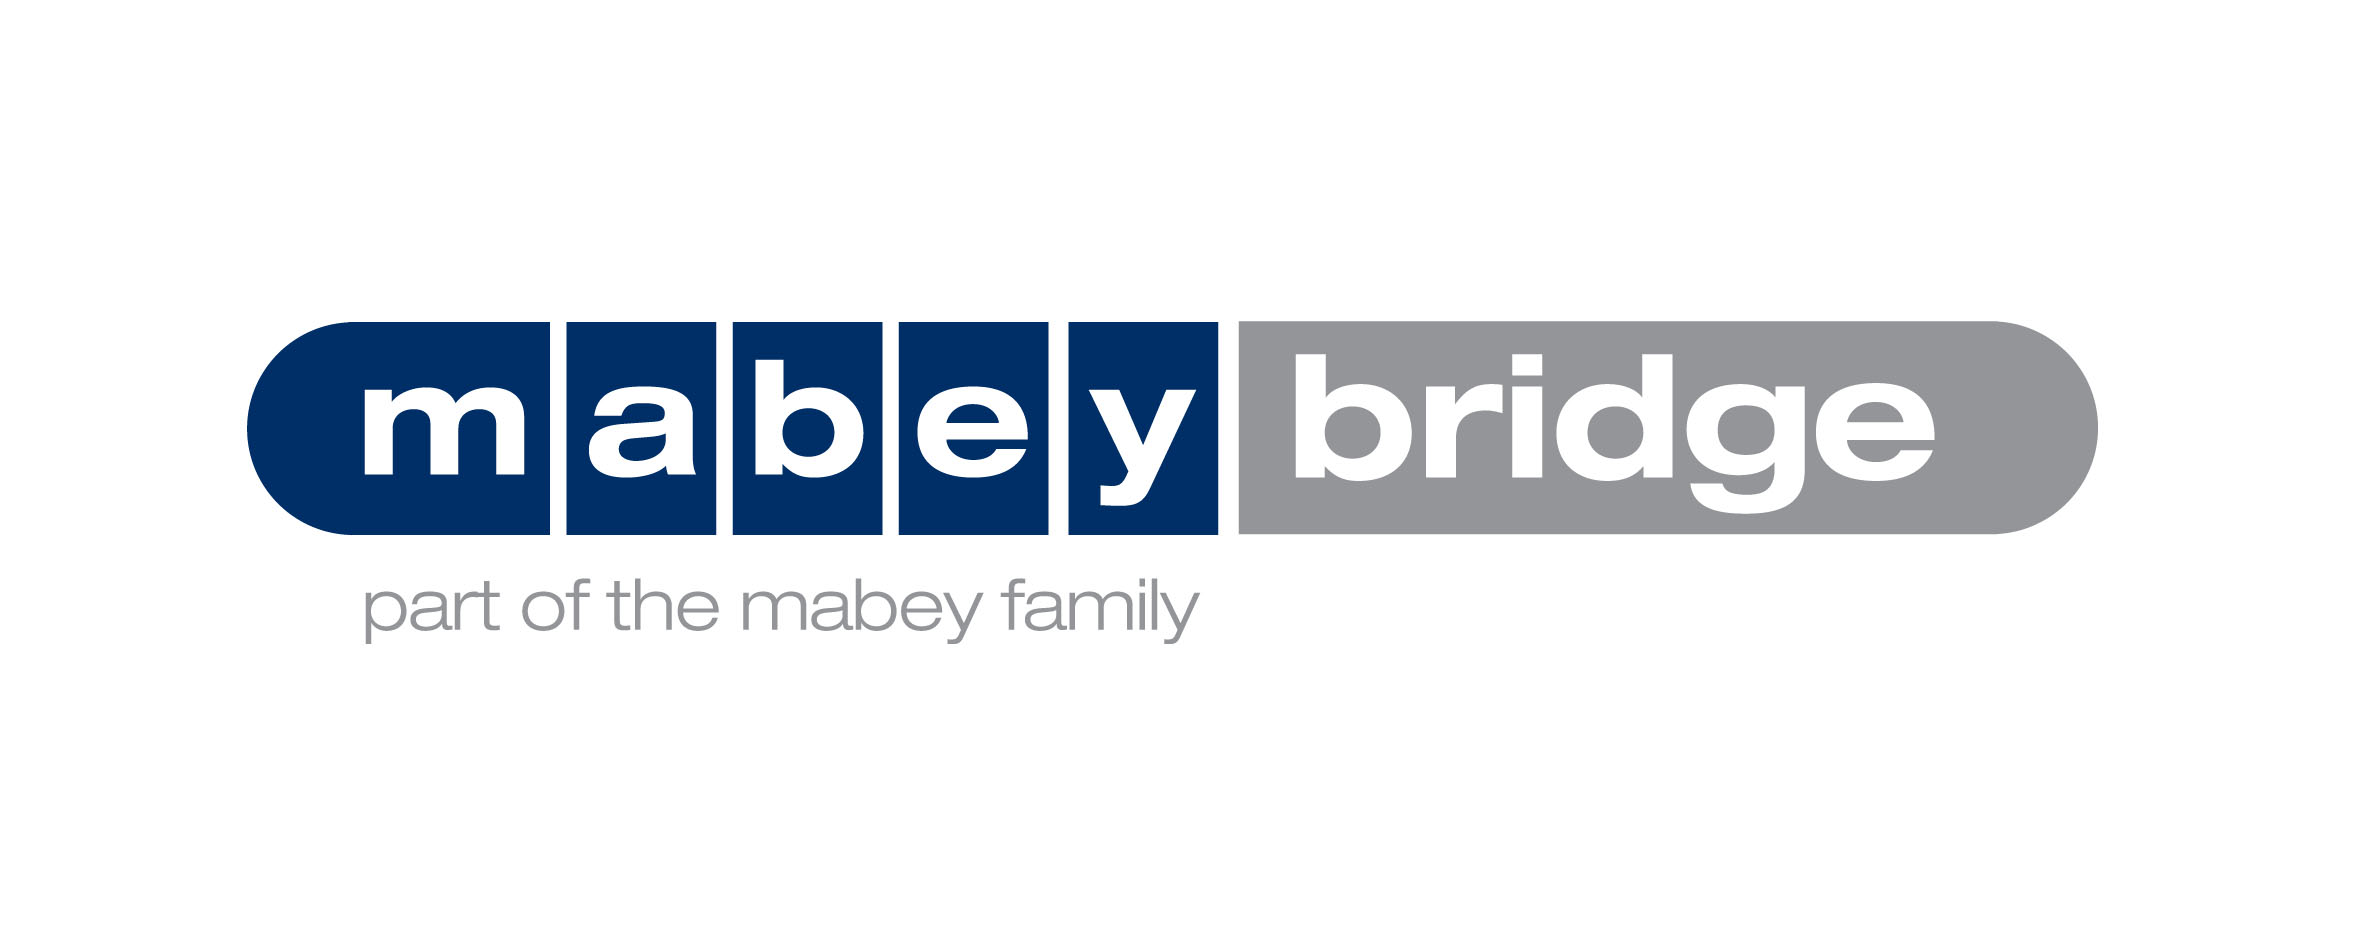 Mabey_(bridge)_Logo-01.jpg